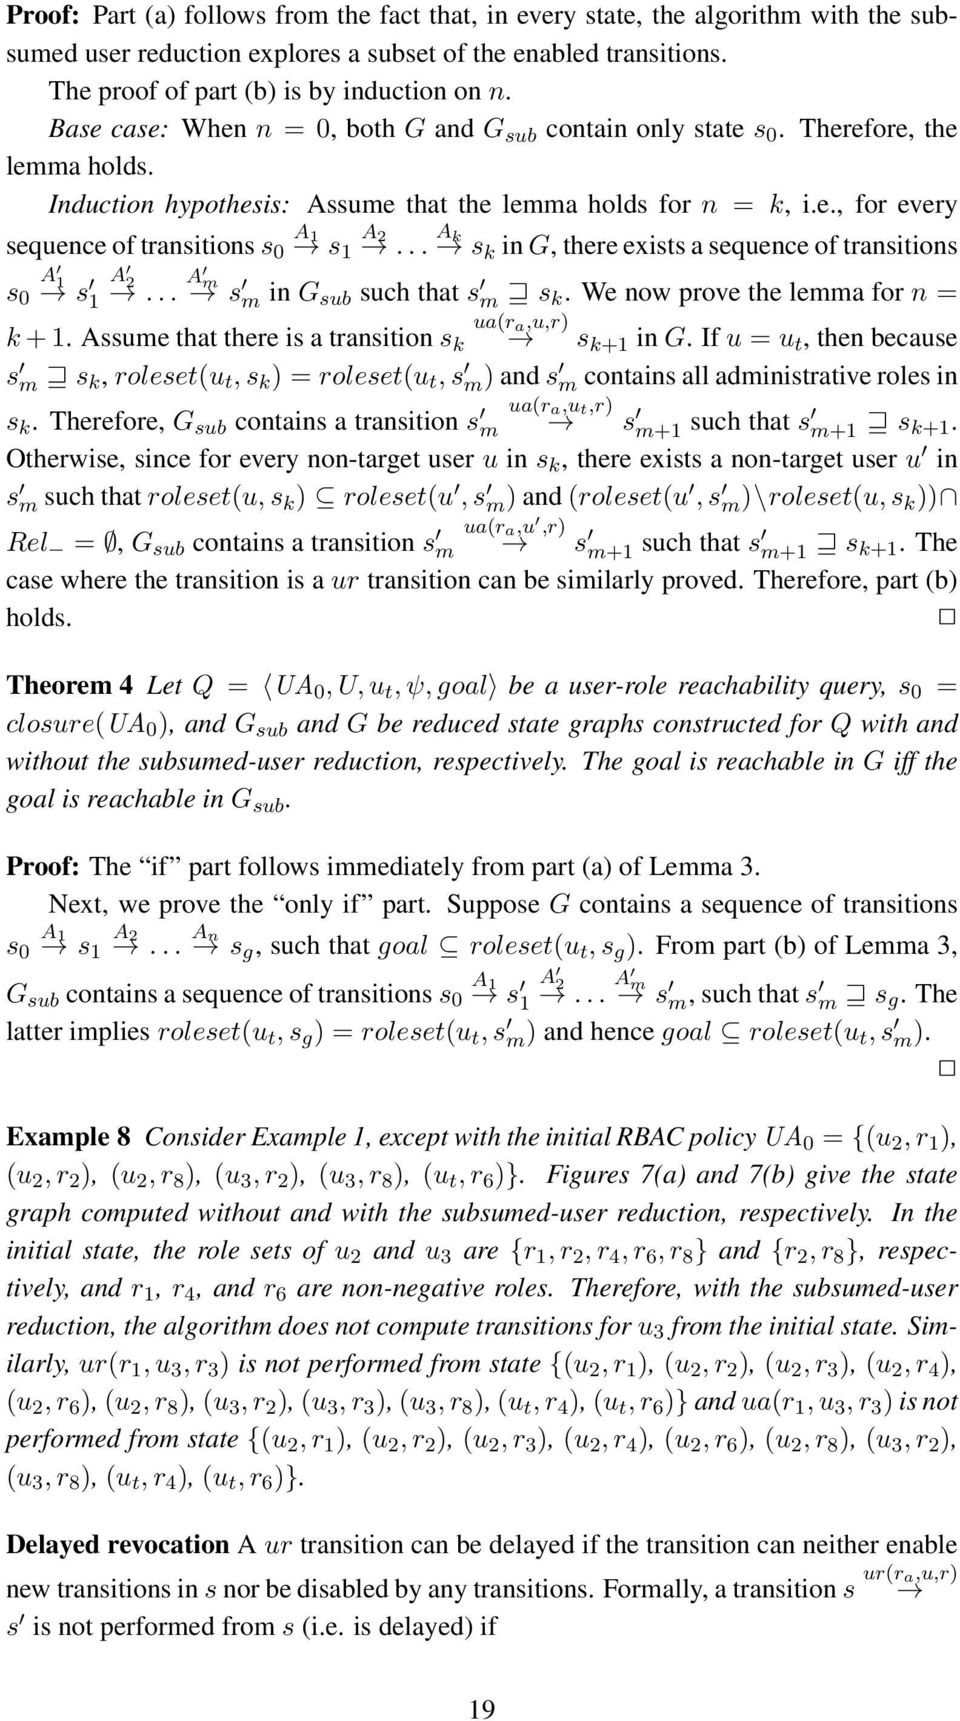 .. k sk in G, there exists a sequence of transitions s 1 0 s 2 1... m s m in G sub such that s m s k. We now prove the lemma for n = ua(r a,u,r) k + 1. ssume that there is a transition s k s k+1 in G.